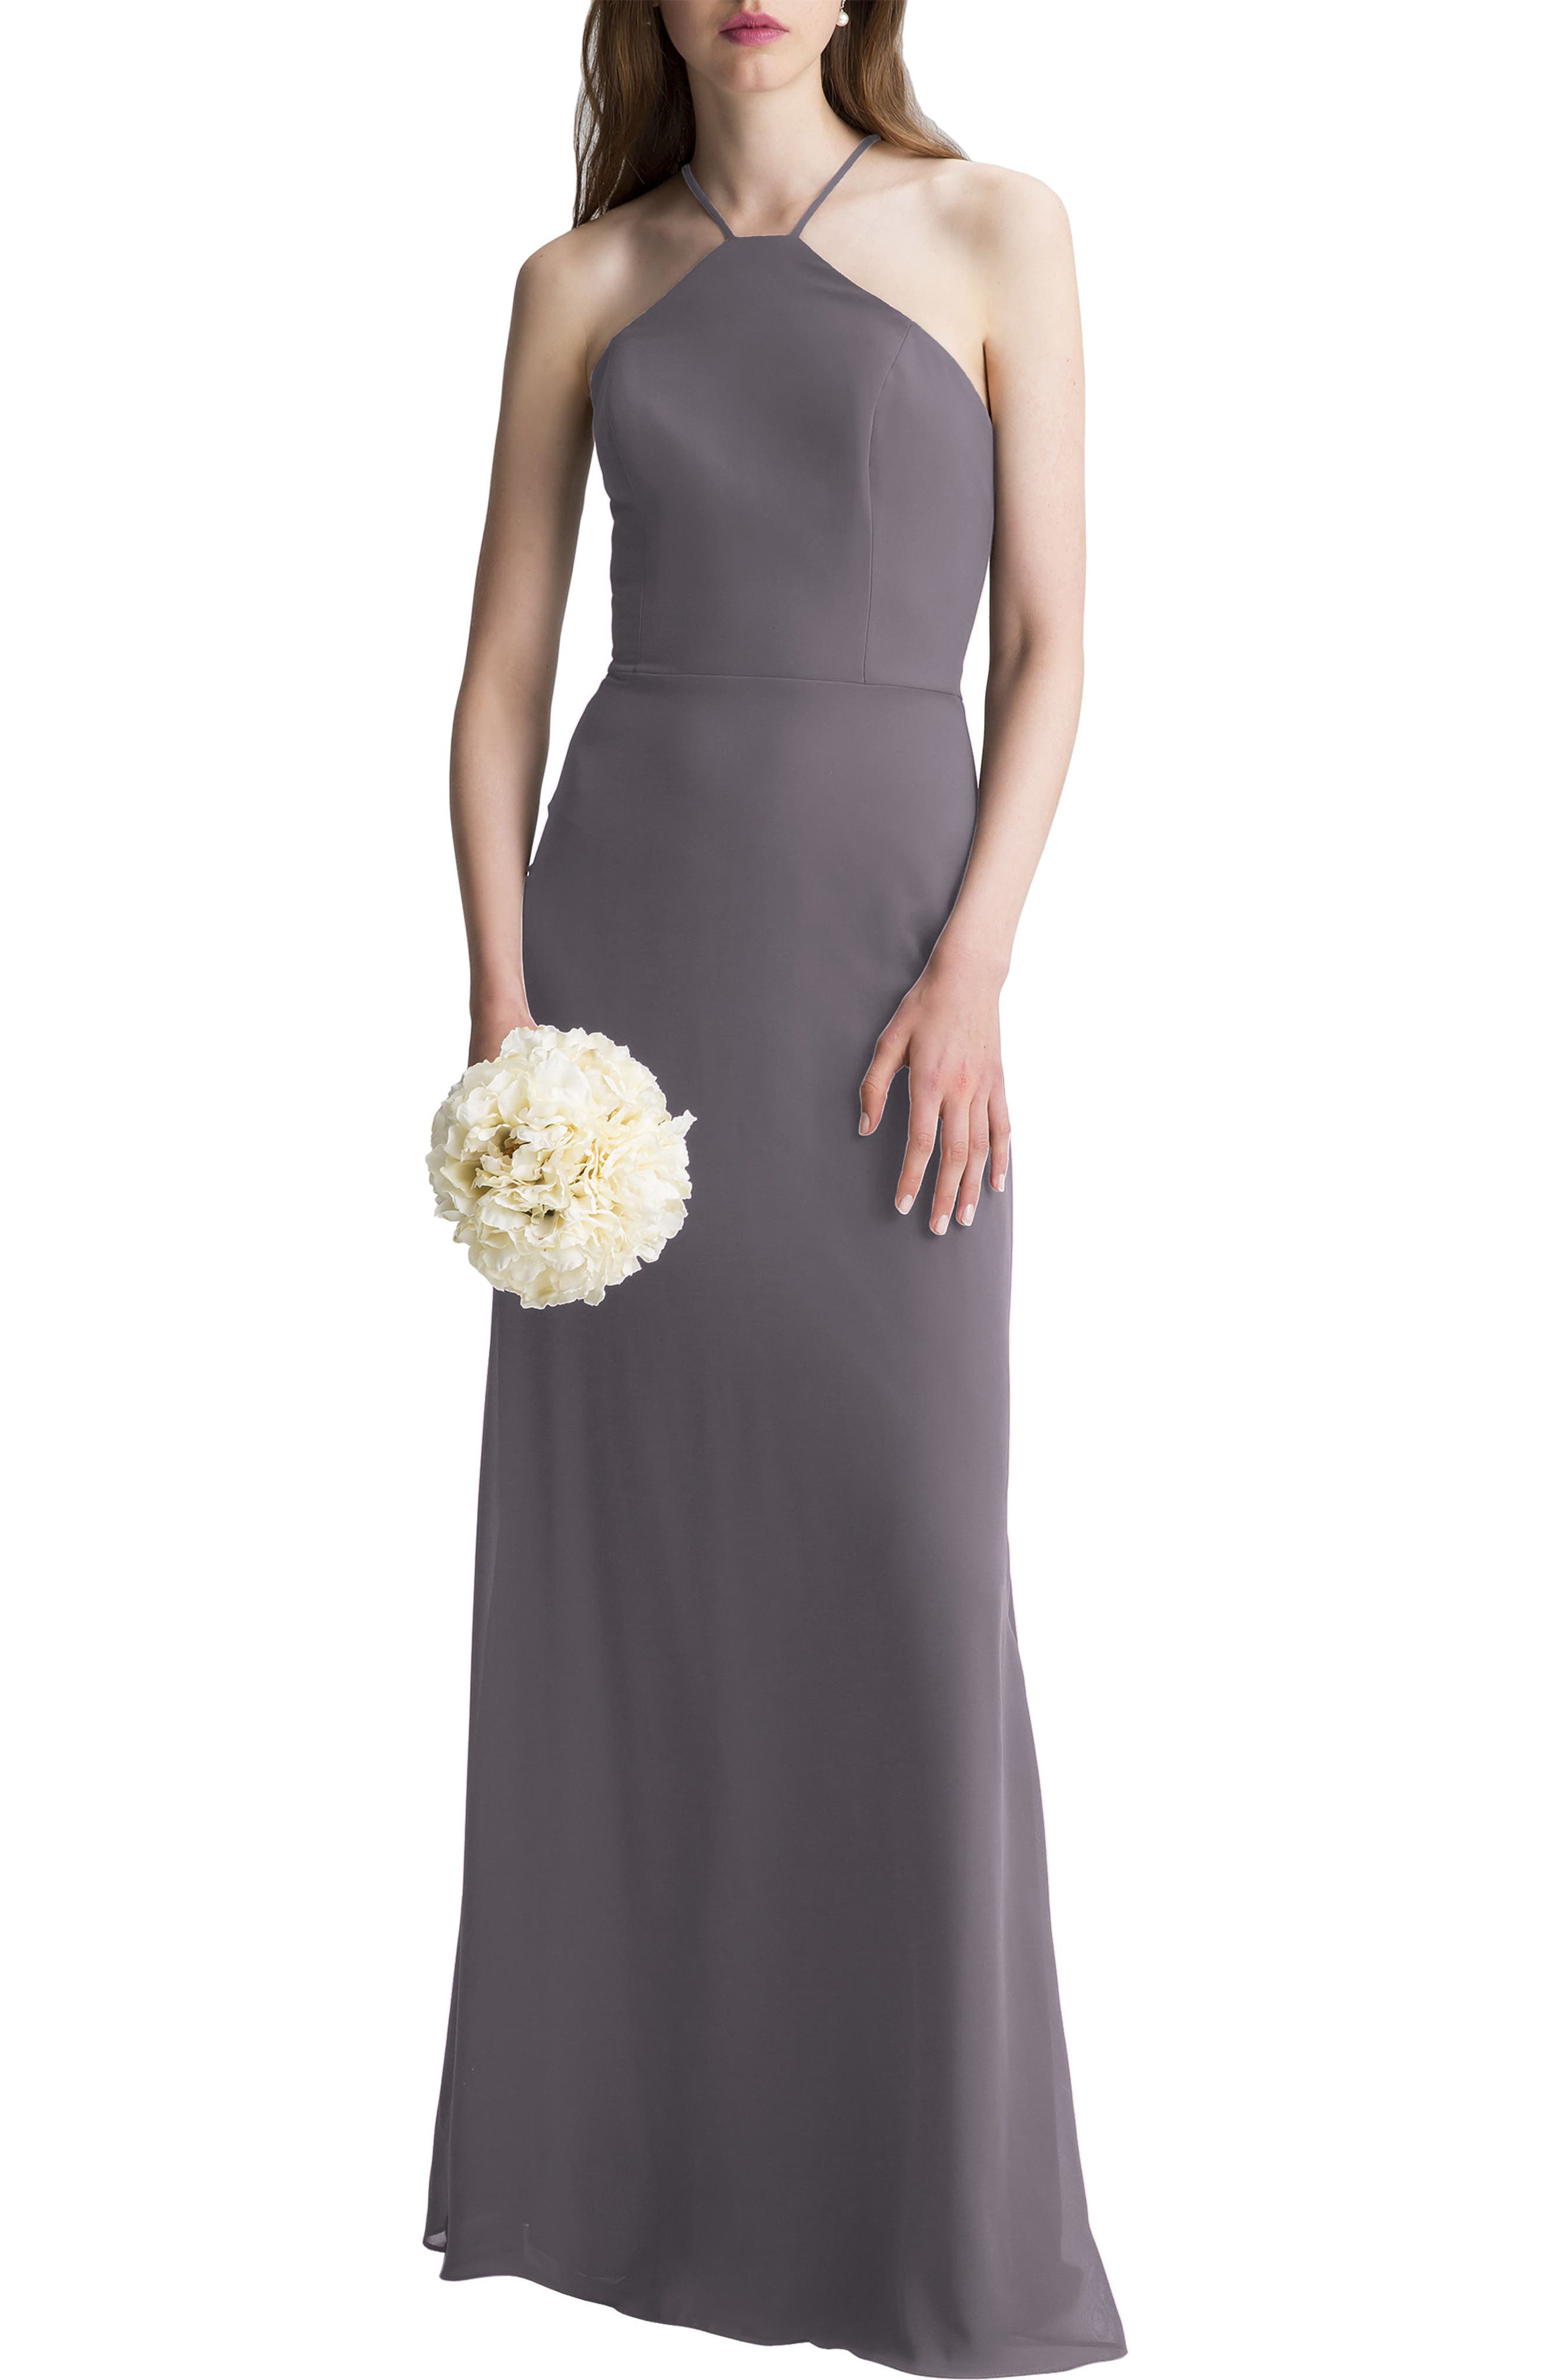 Main Image - #Levkoff High Neck Chiffon A-Line Gown